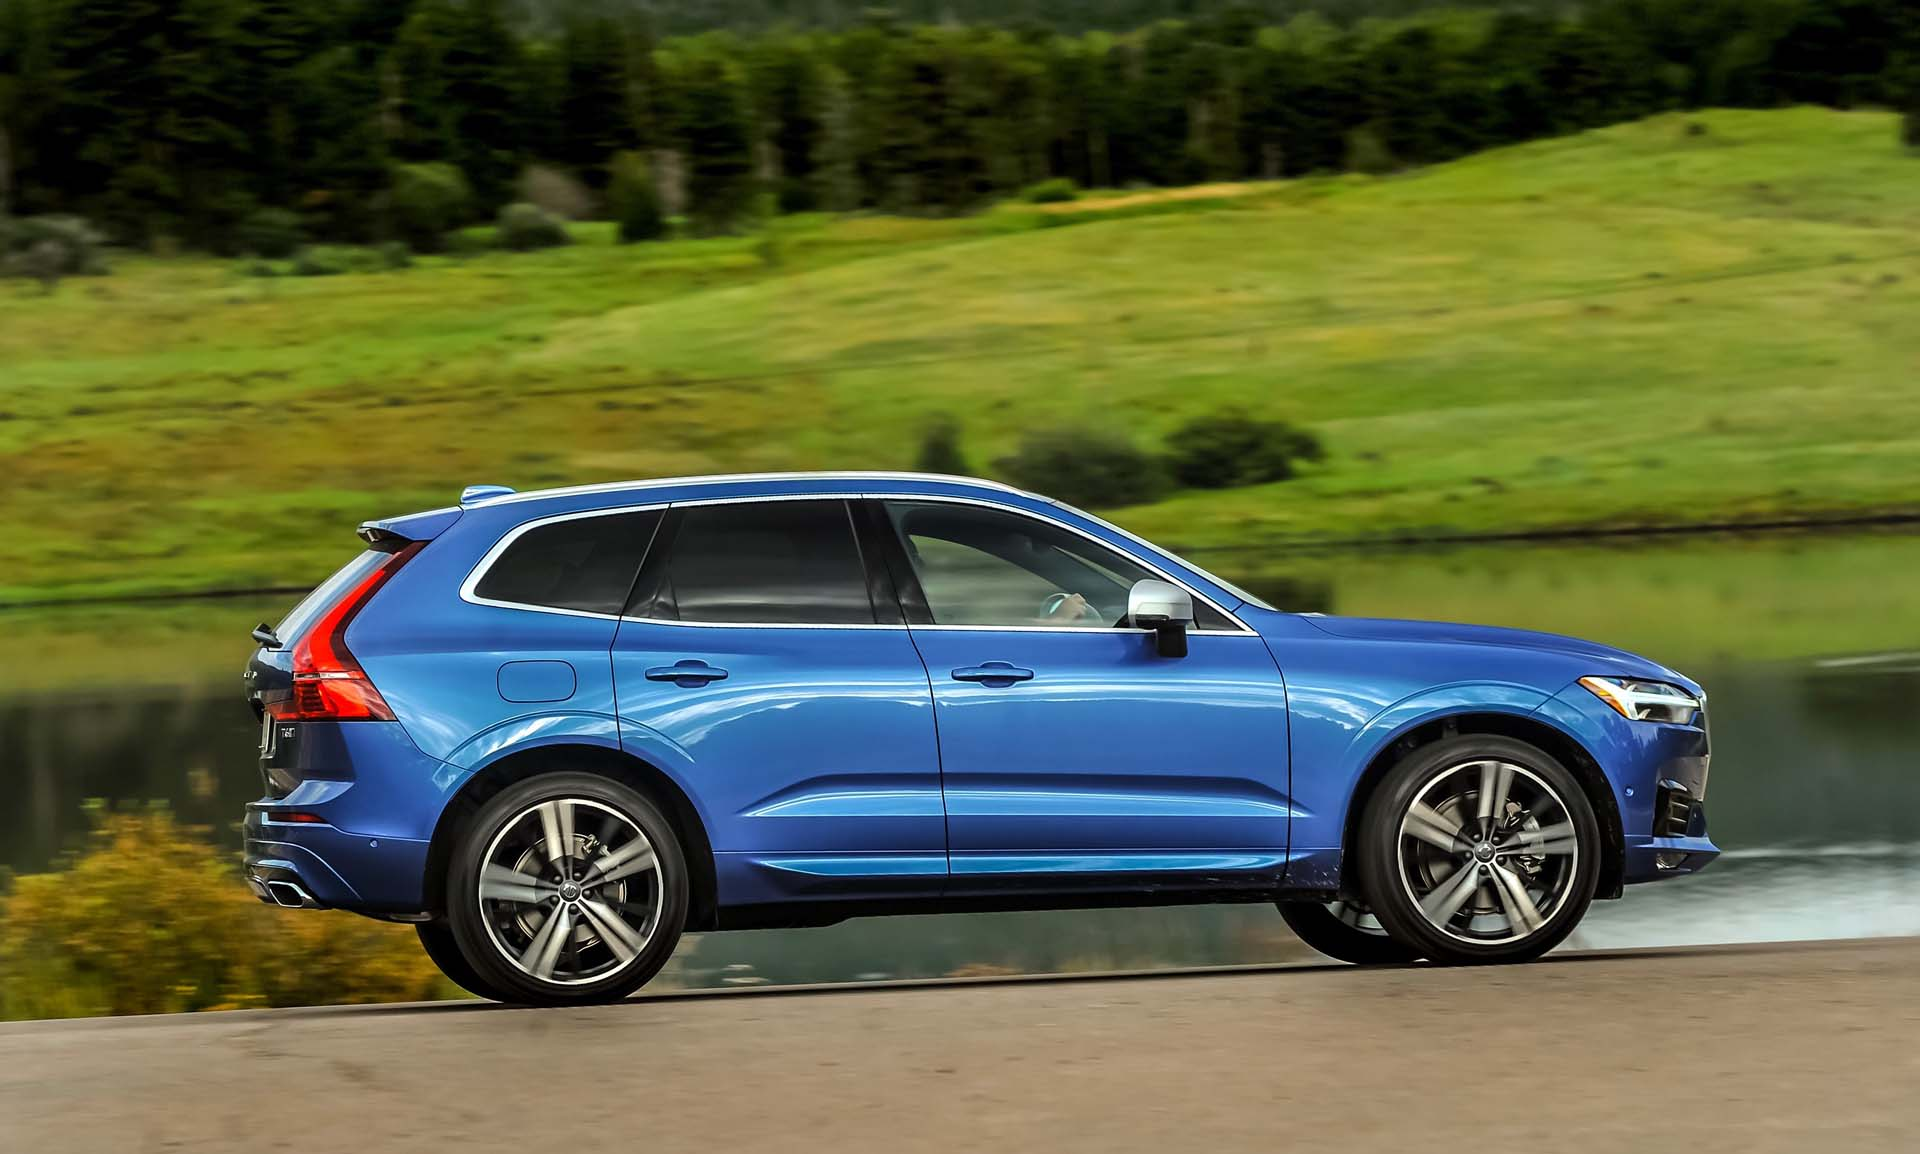 2019 Volvo XC60: Changes, Design, Price >> 2019 Volvo Xc60 Review Ratings Specs Prices And Photos